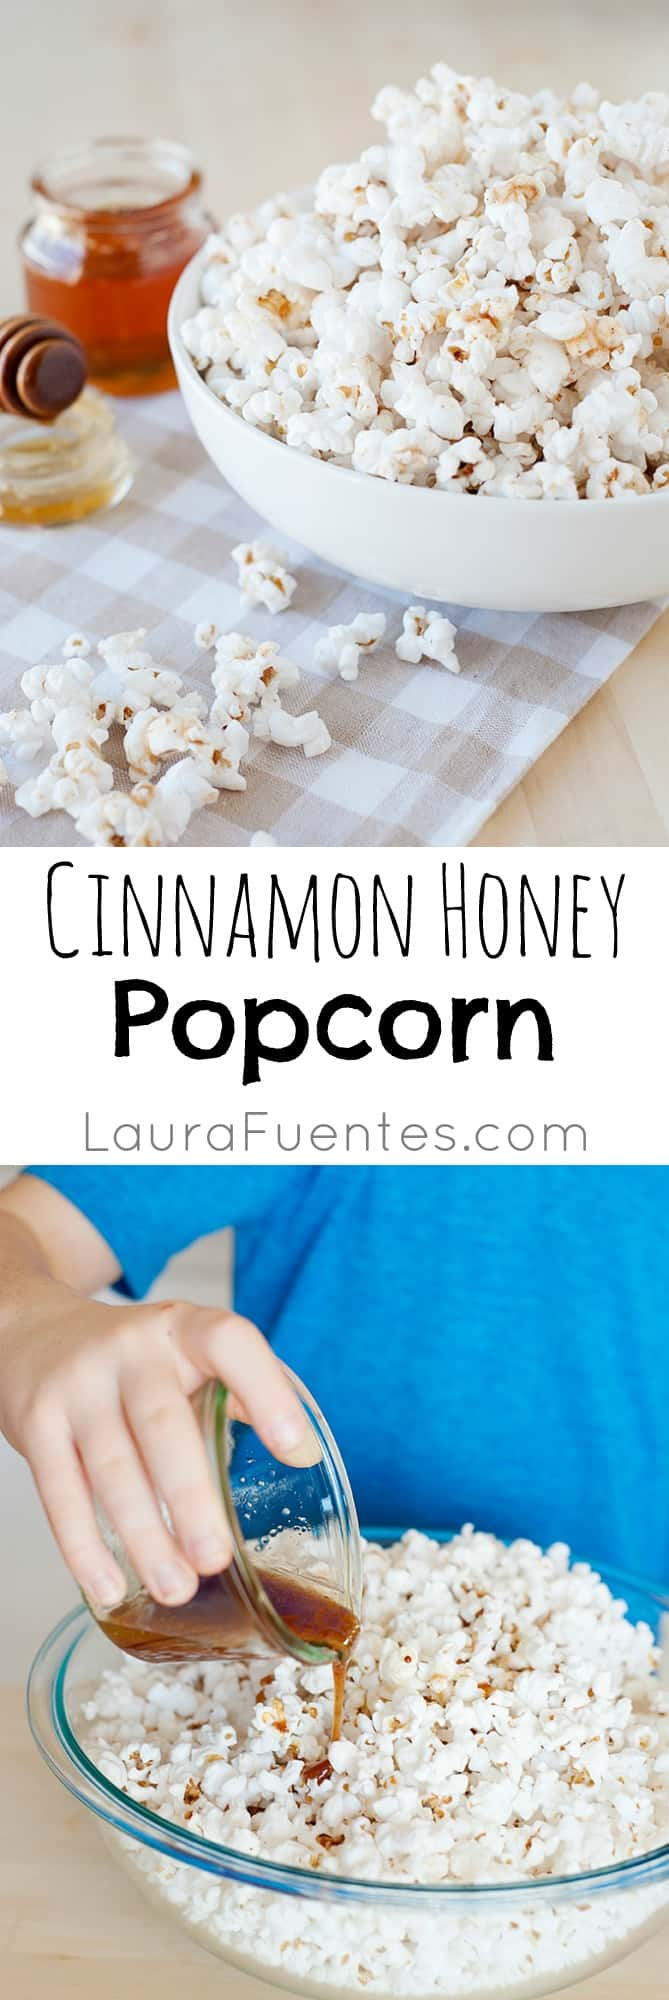 Cinnamon Honey Butter Popcorn: Perfect for movie night or your kids next sleepover. Enjoy a sweet twist on a classic movie favorite.